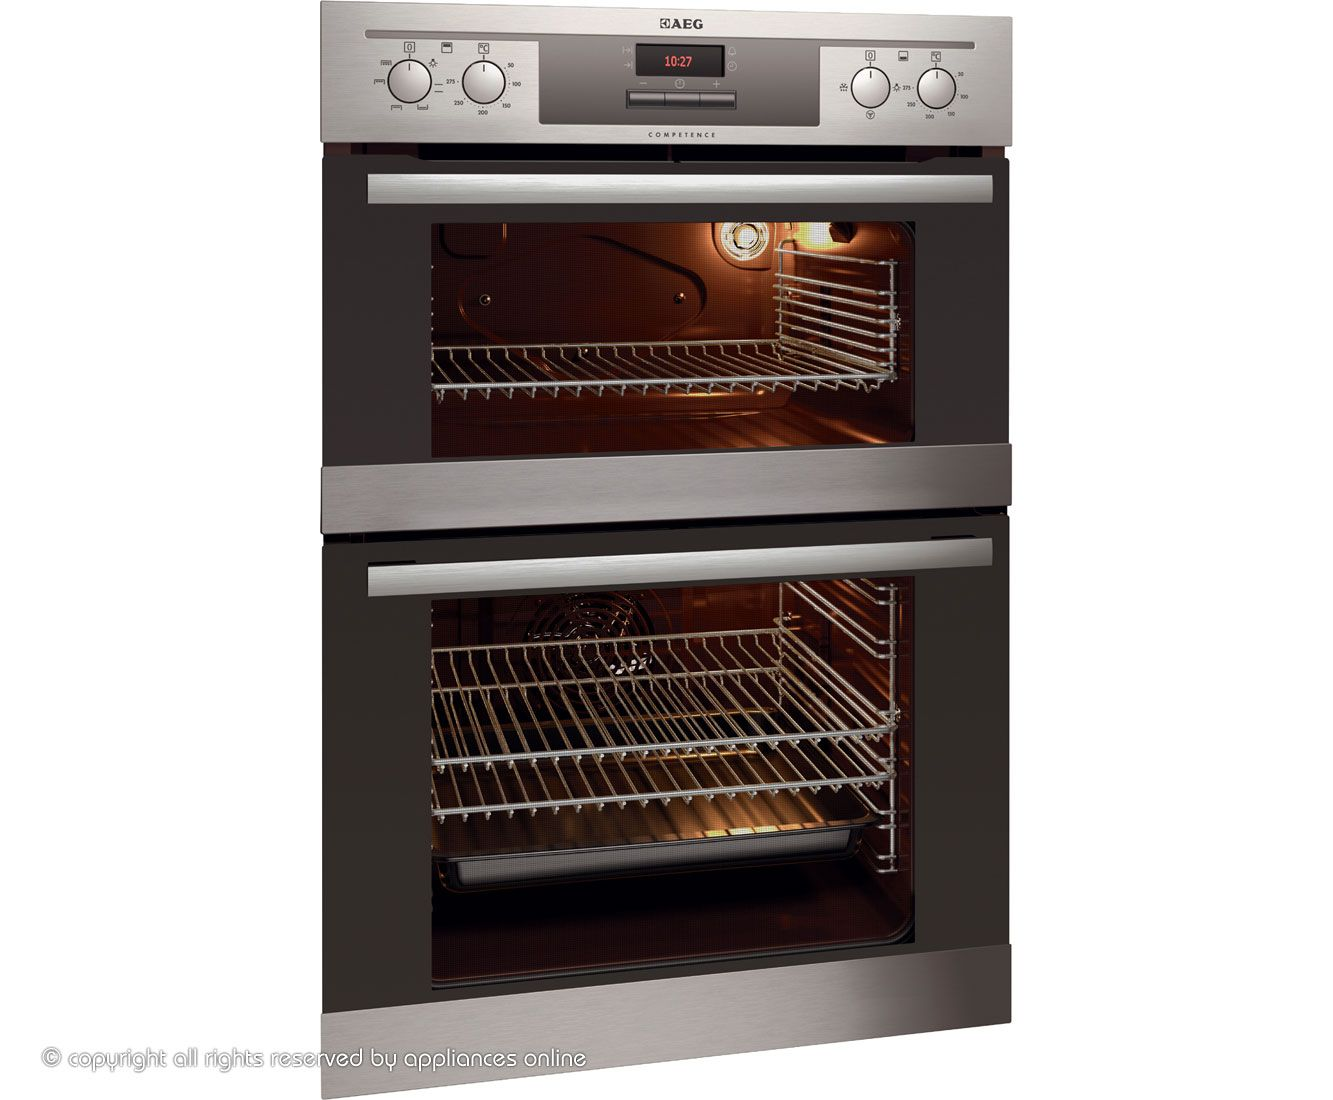 best double oven I can find to stop the nightmare cooking